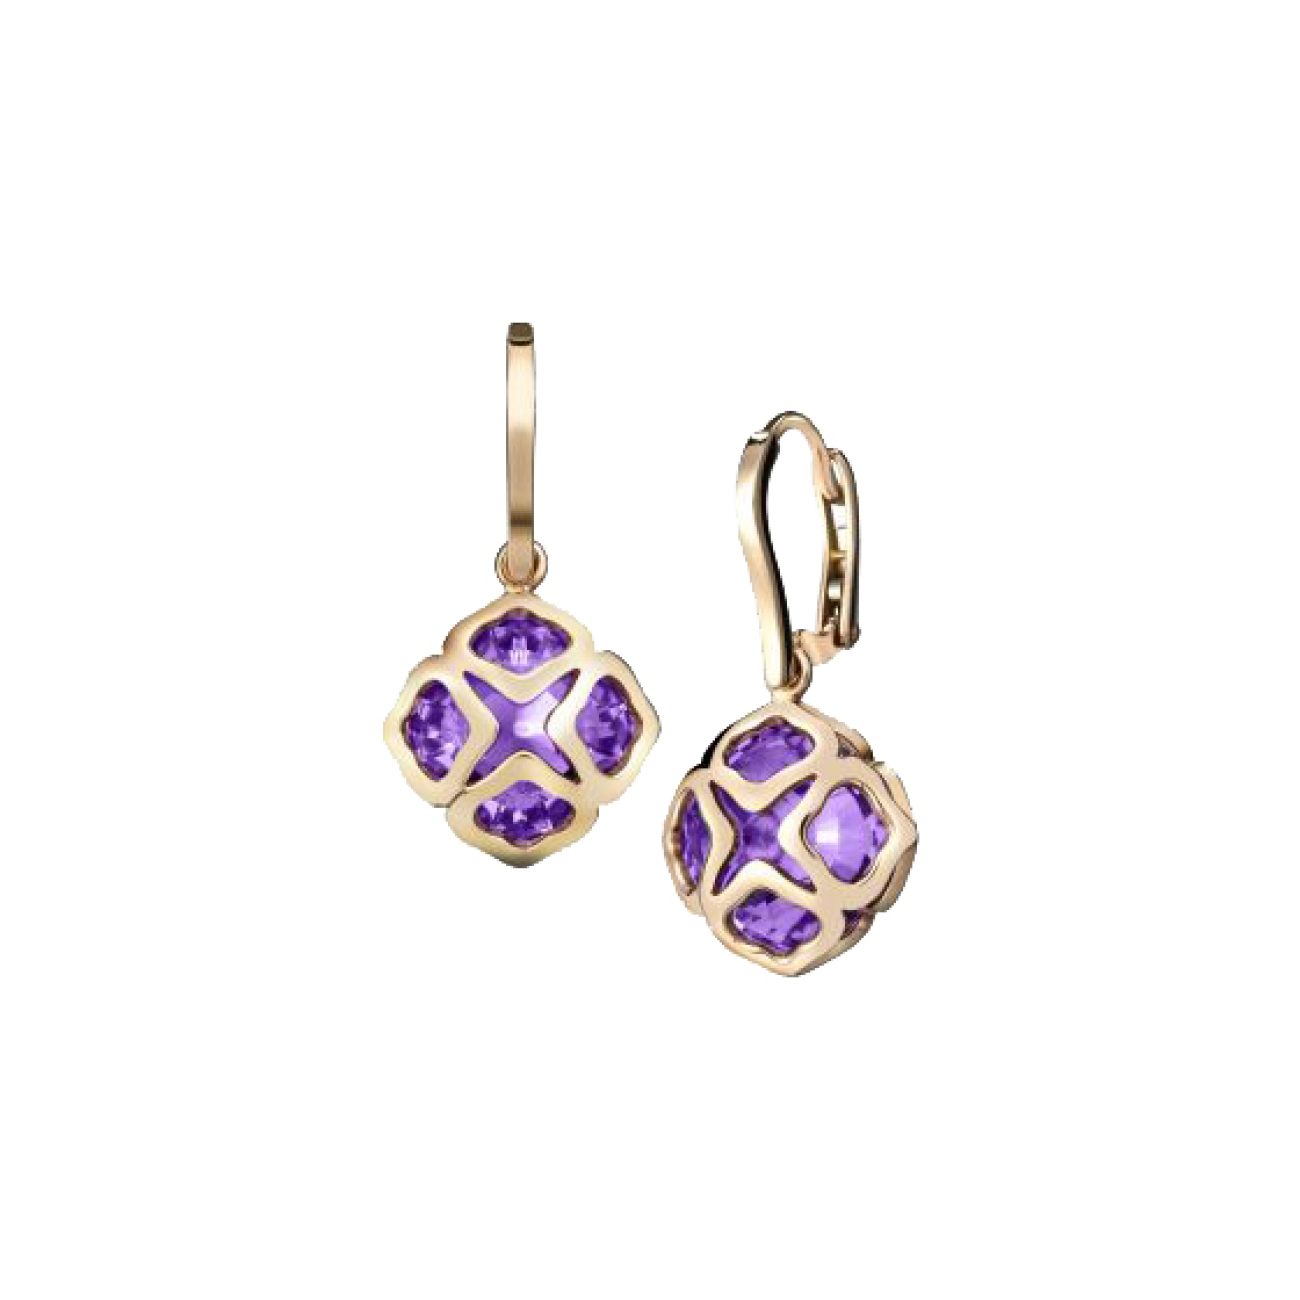 Chopard Jewelry - IMPERIALE COCKTAIL EARRINGS | Manfredi Jewels